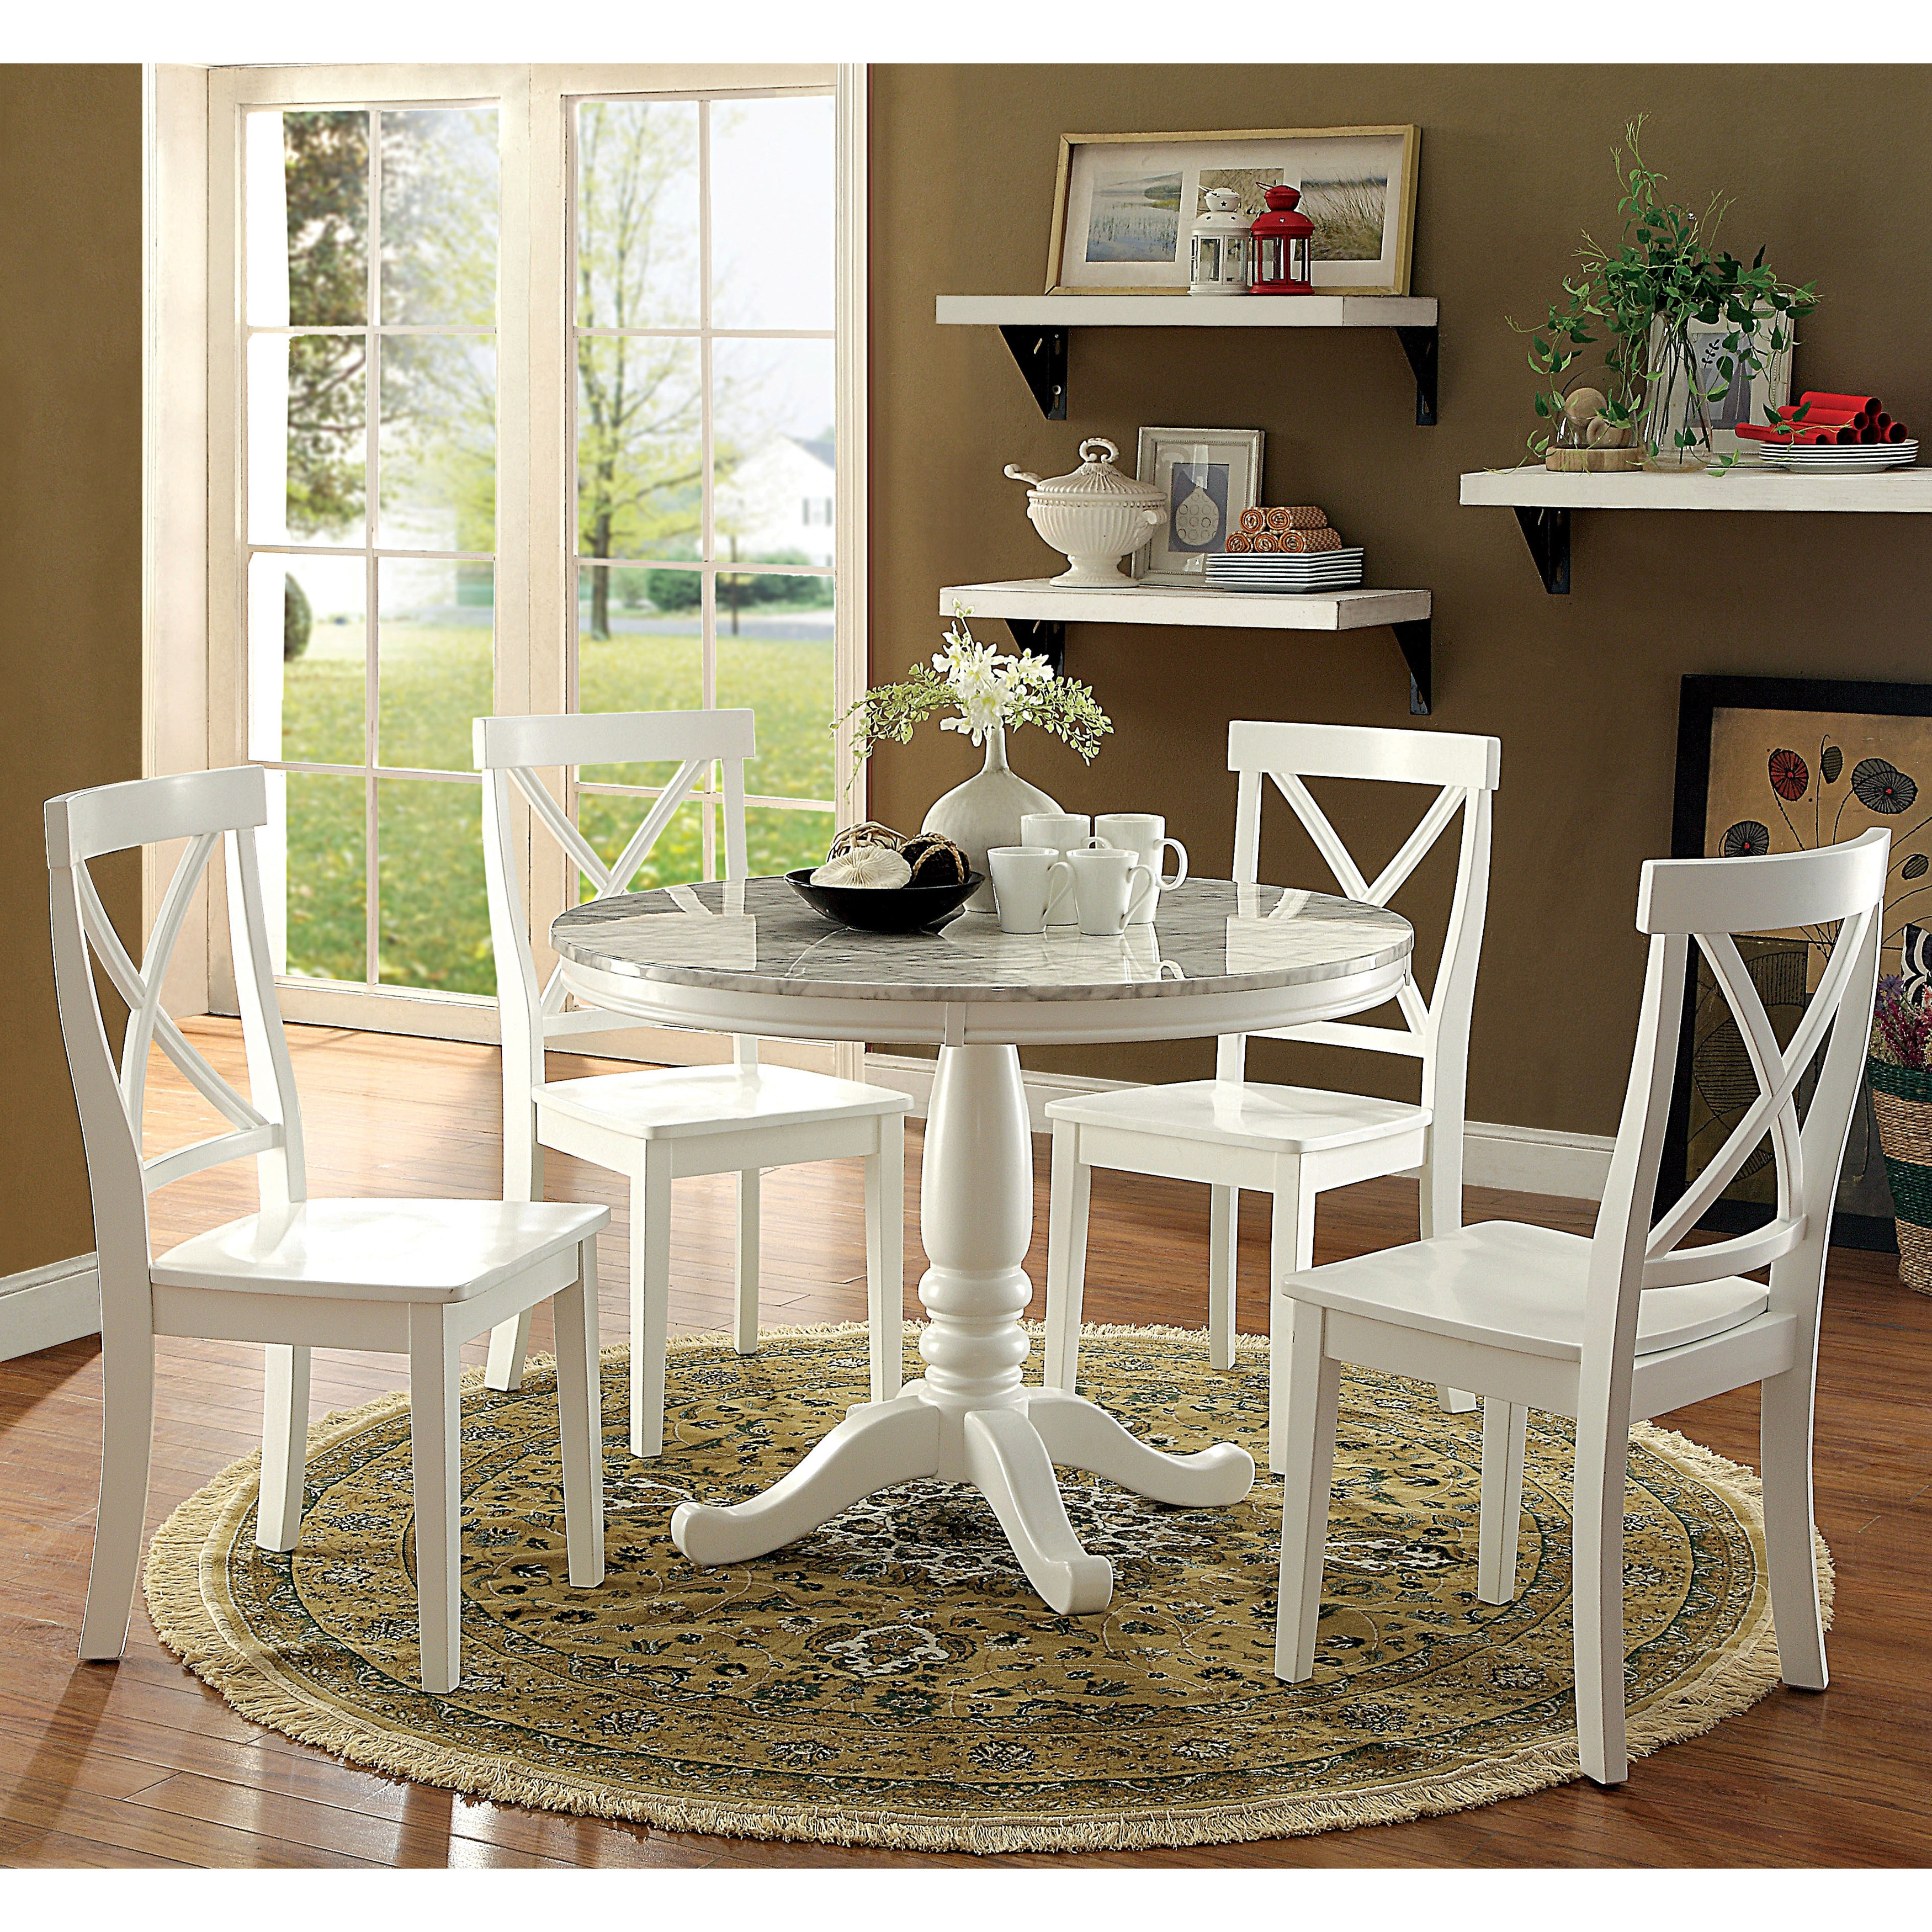 Laine Country White 5 Piece Round Dining Set By Foa